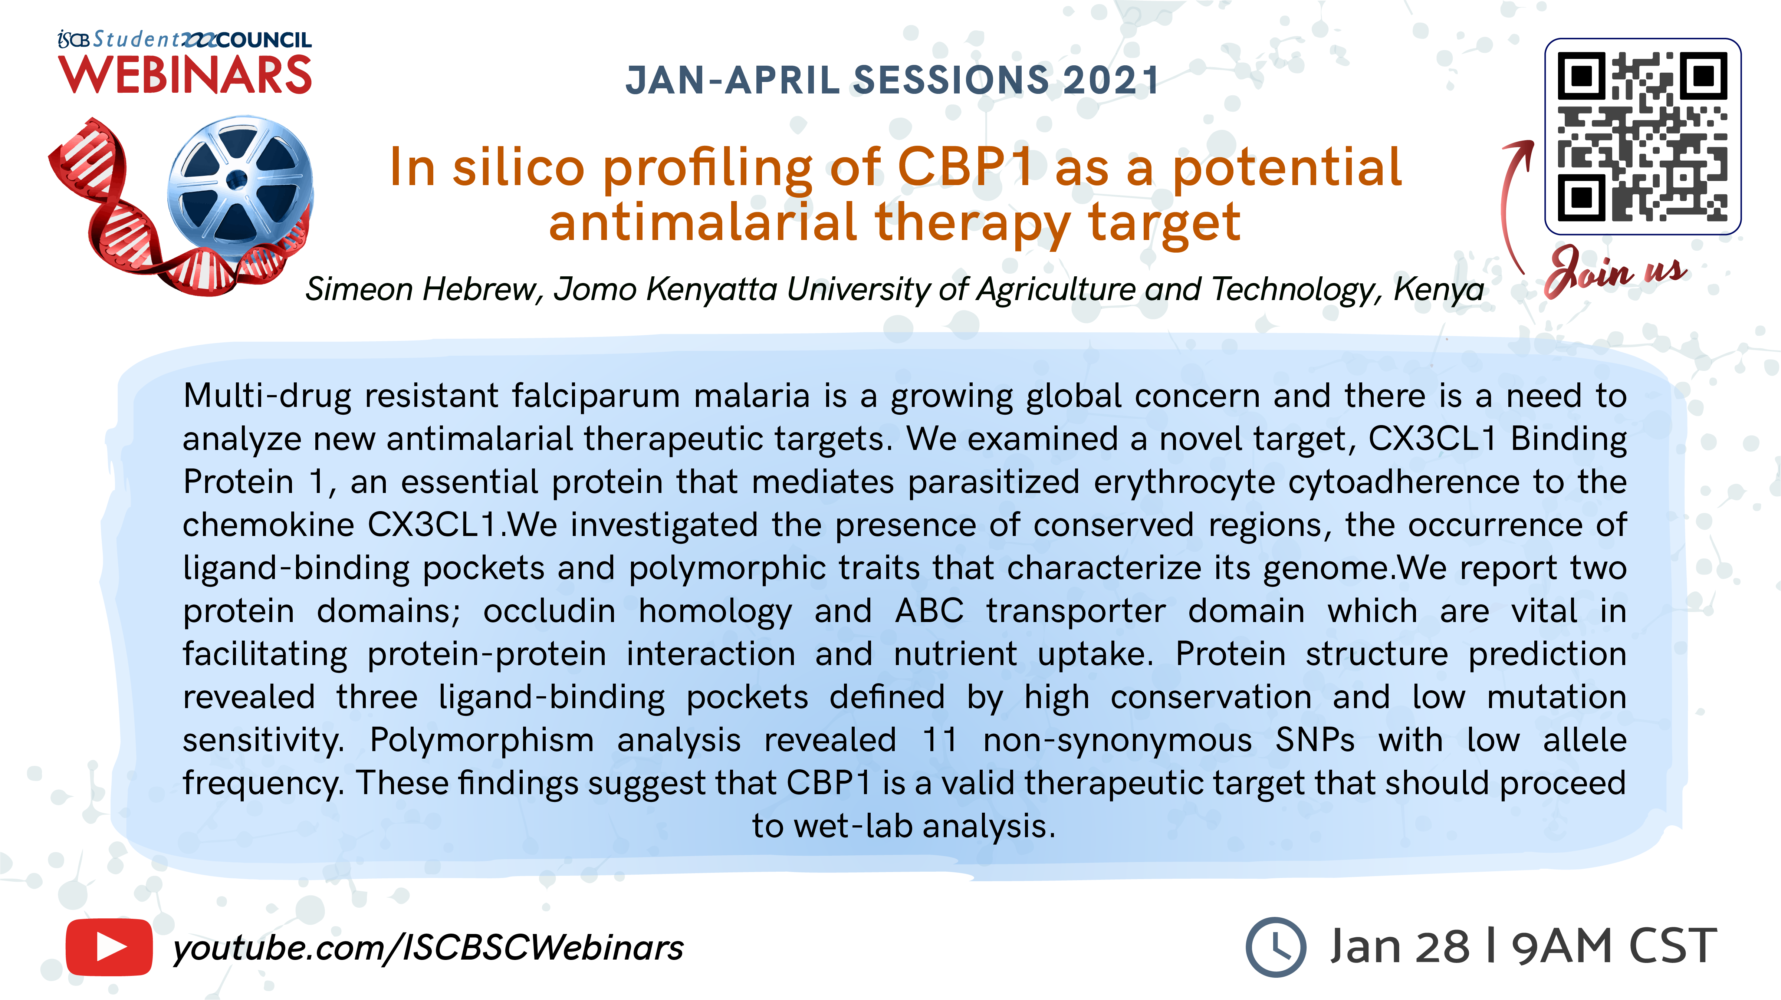 In silico profiling of CBP1 as a potential antimalarial therapy target